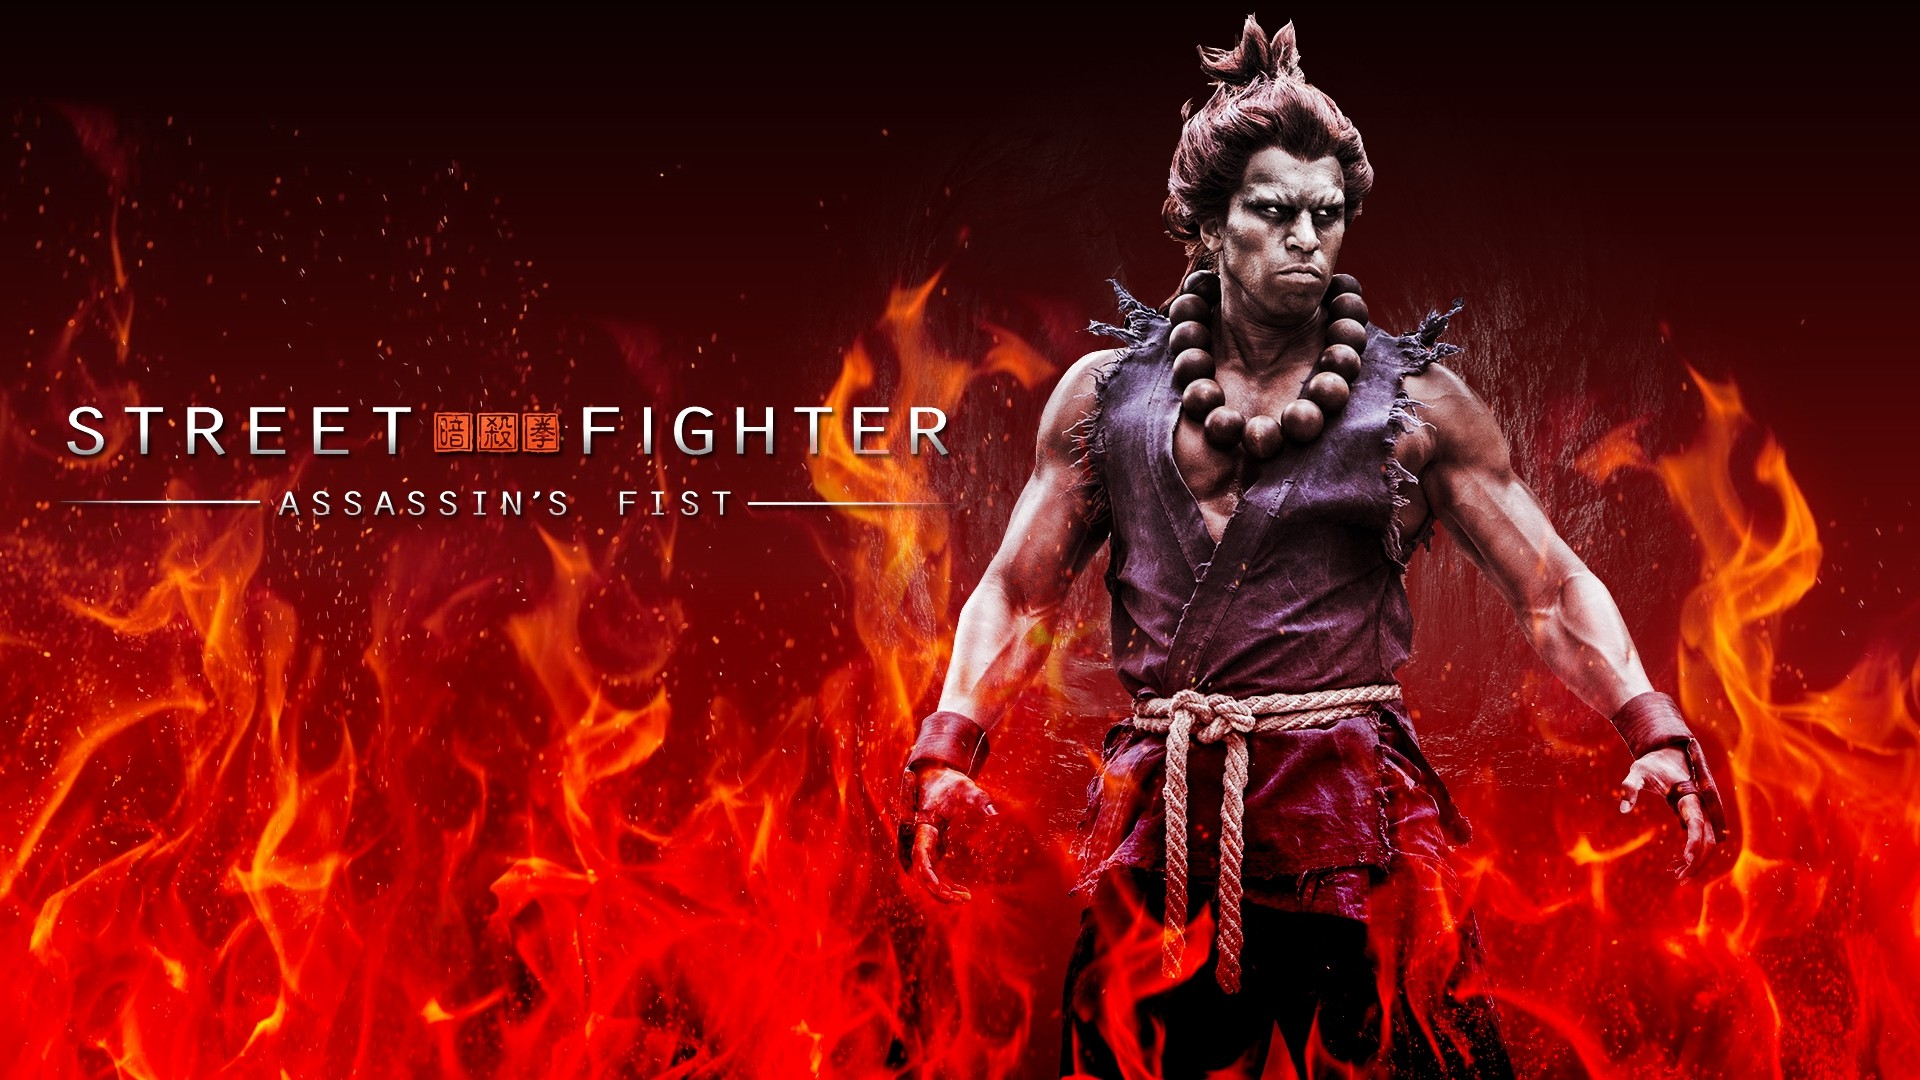 Res: 1920x1080, akuma street fighter assassins fist by f1 hd wallpapers free windows  wallpapers amazing colourful 4k picture artwork lovely 1920×1080 Wallpaper  HD